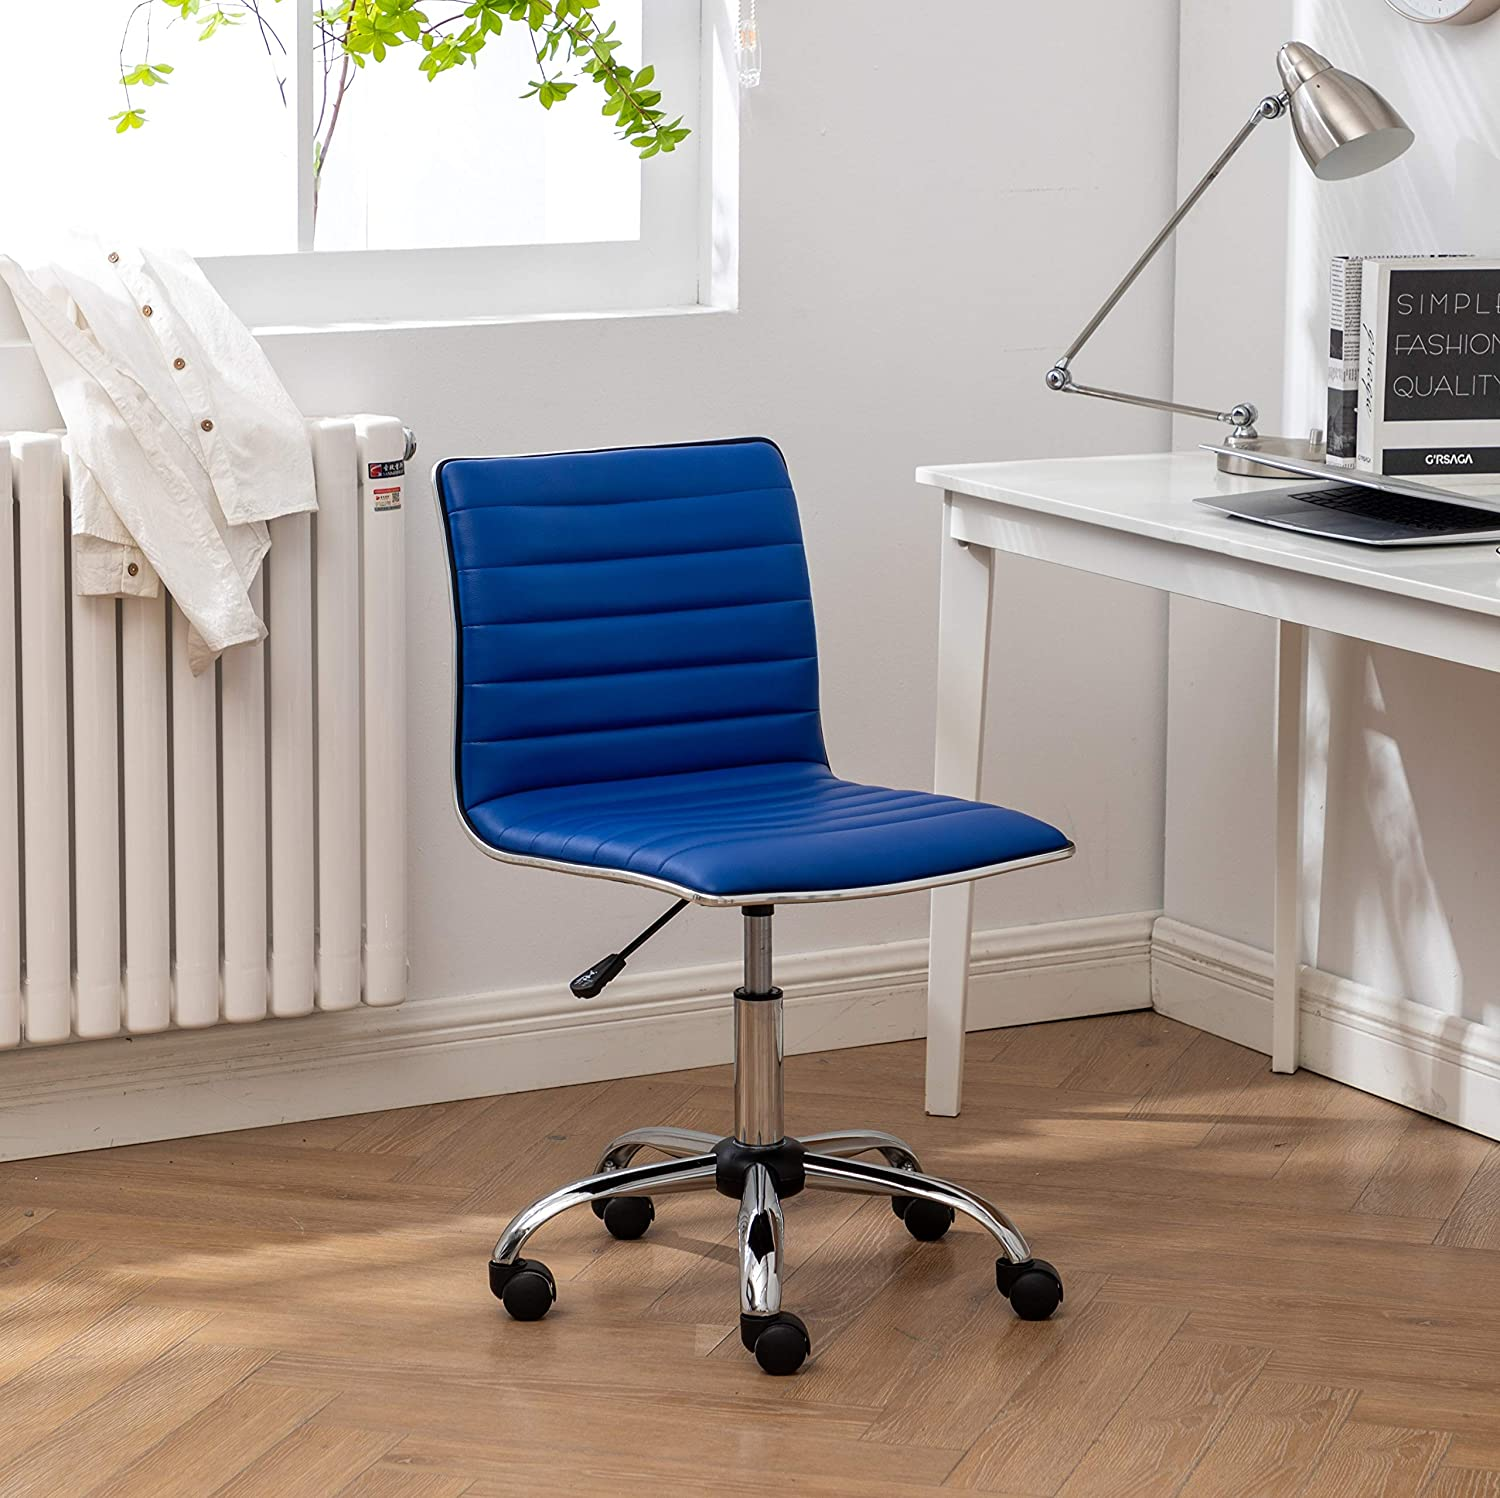 Roundhill Furniture Fremo Adjustable Air Lift Office Chair, Blue